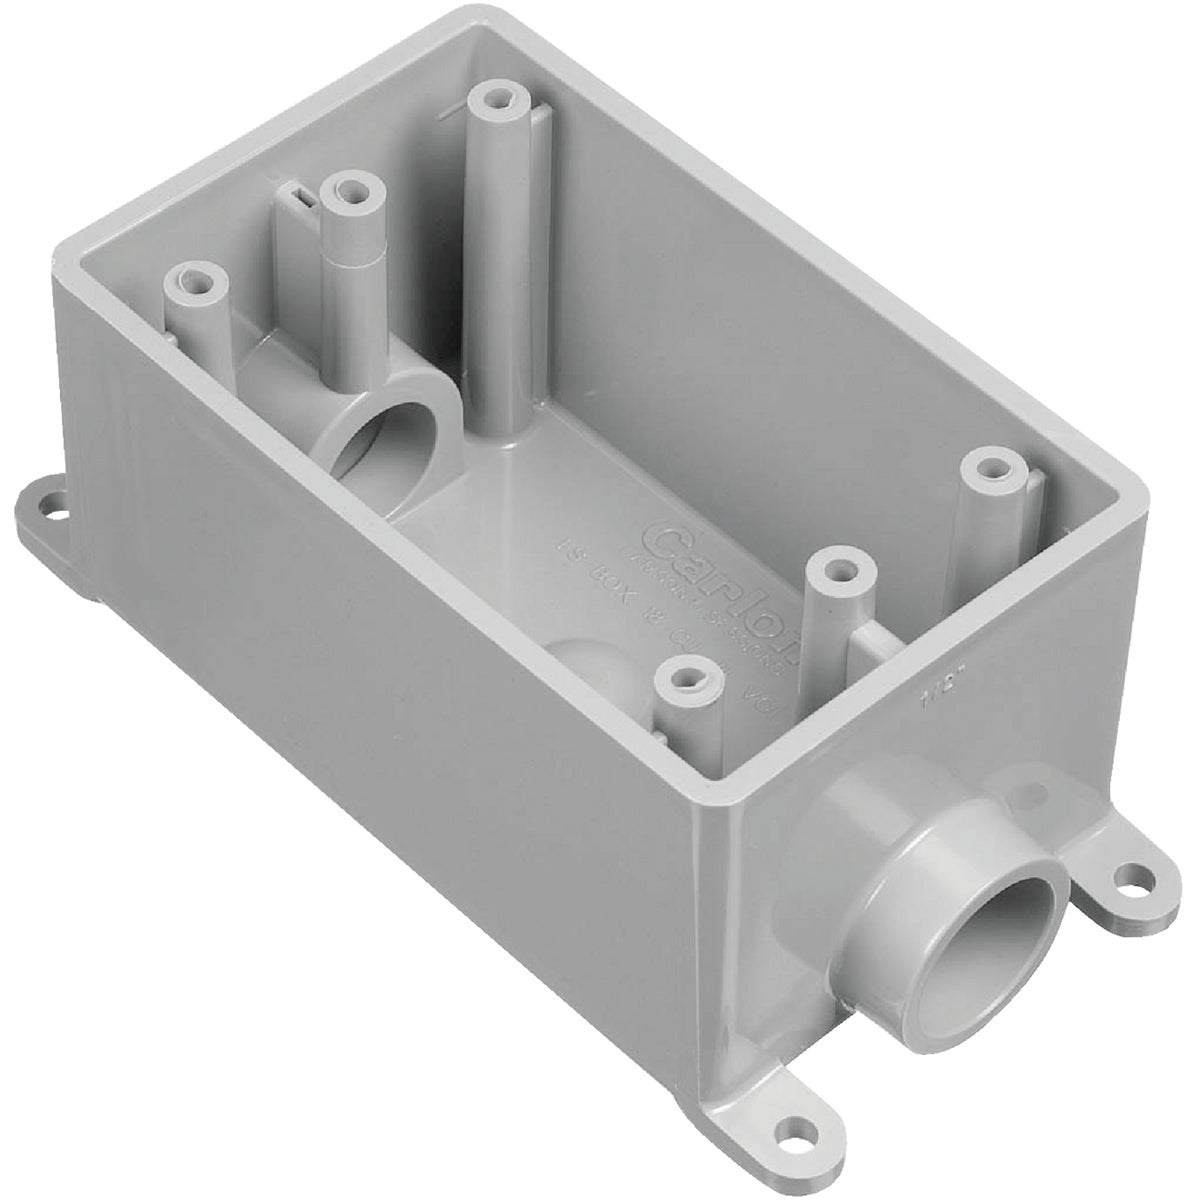 "3/4"" FSC OUTLET BOX - E981EFNCTN by Thomas & Betts"